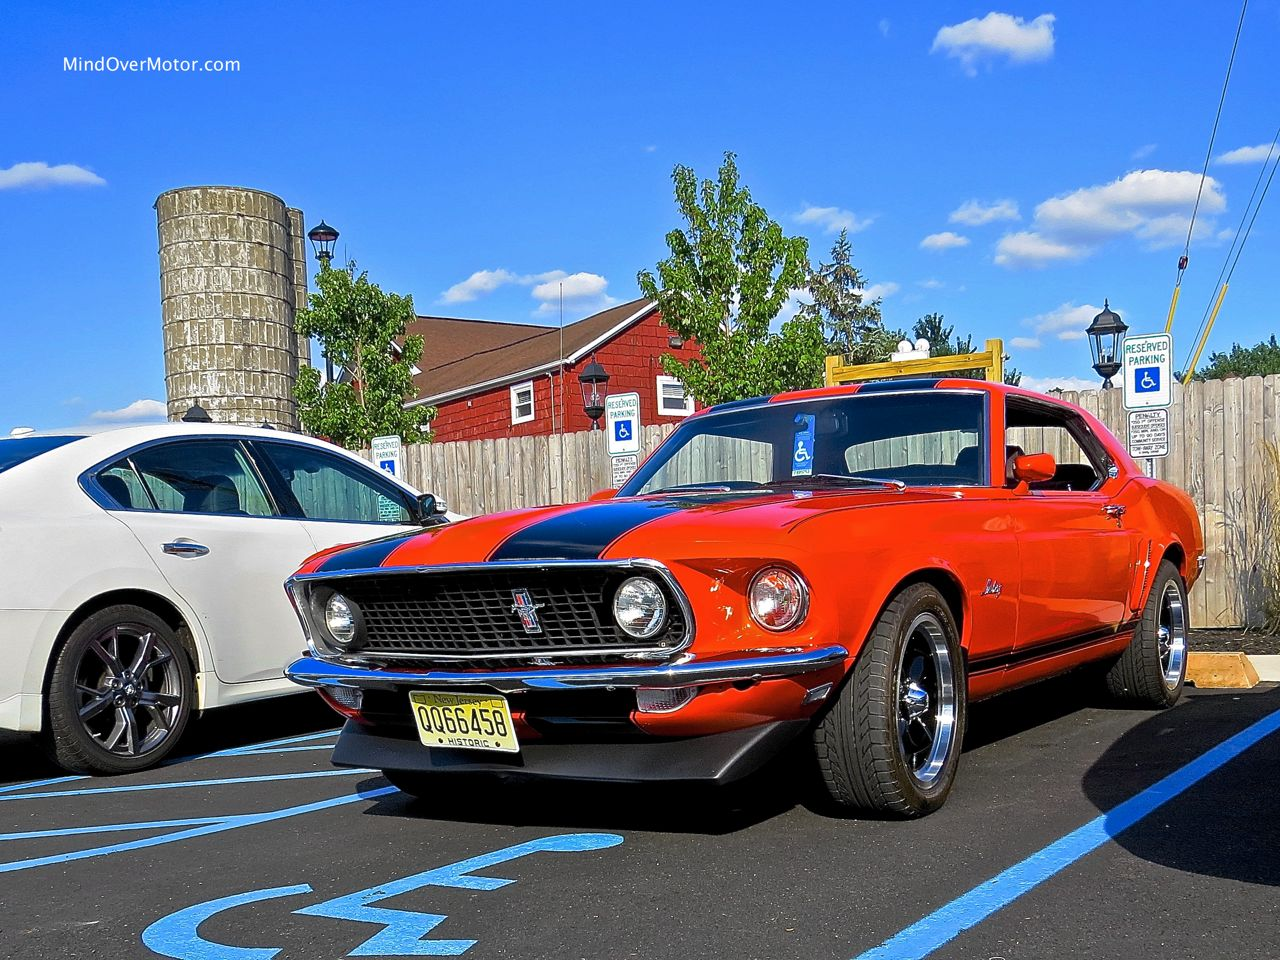 1969 Ford Mustang Notchback Spotted In Somerset Nj Mind